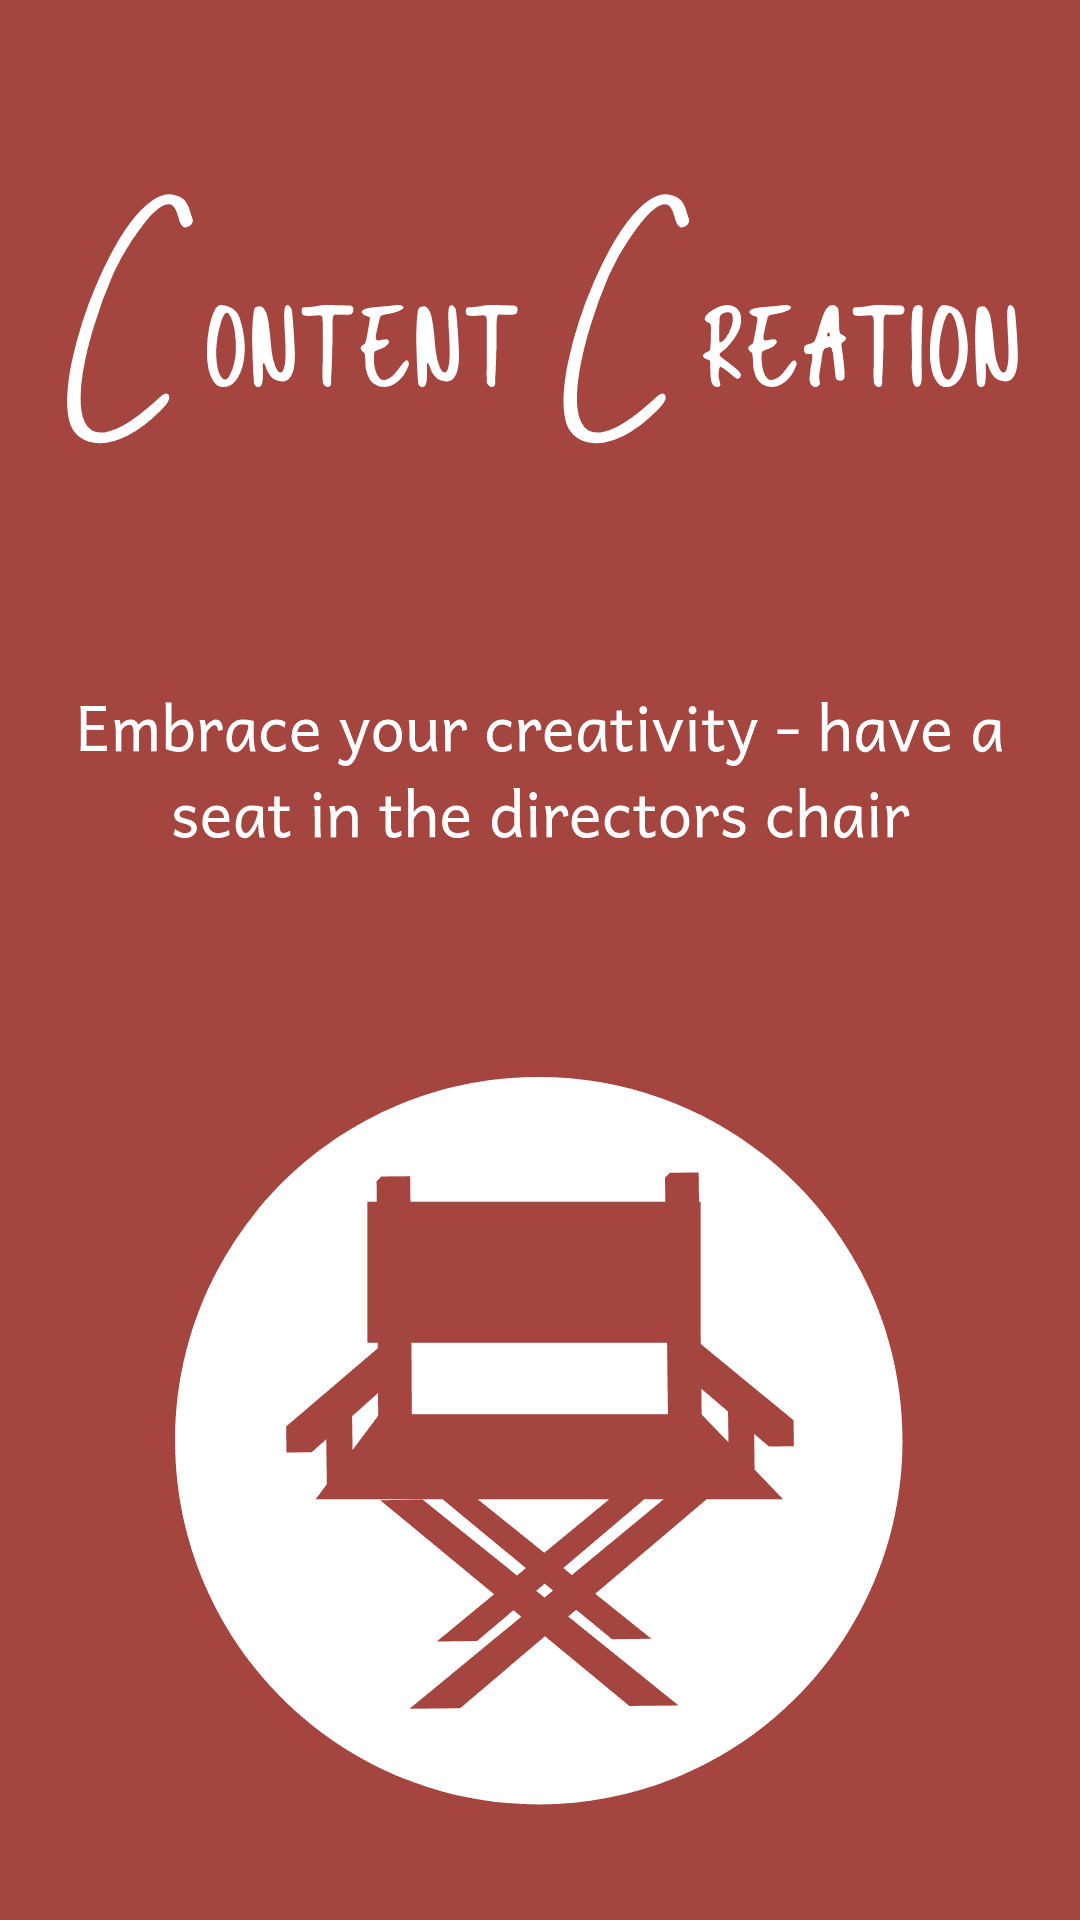 content creation - have a seat in the directors chair